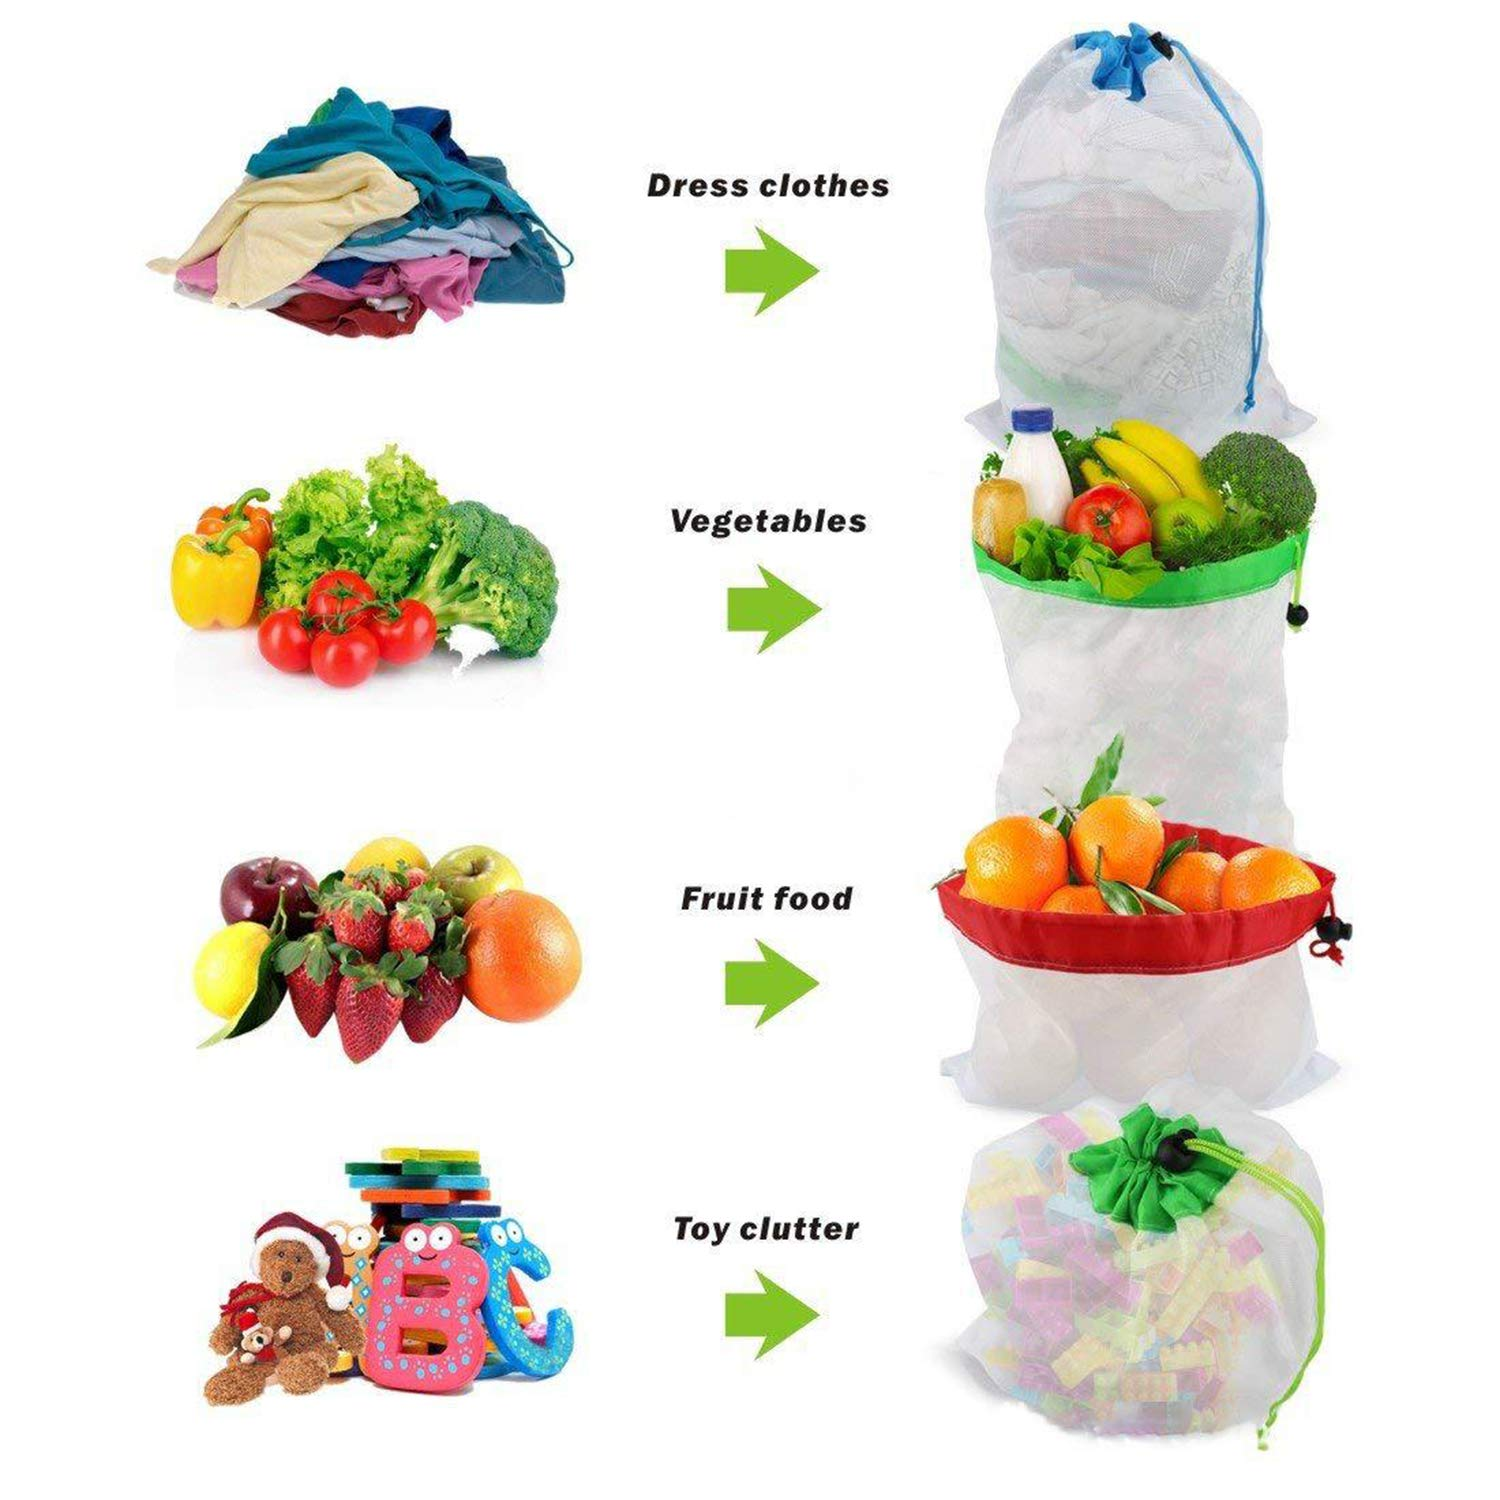 Reusable Mesh Produce Bags Transporting and Storing Fruits 12pcs Washable Dacron Fruit Vegetable Produce Mesh Bags with Drawstrings Veggies and Toy Large Medium Small Natural Lightweight See Through Transparent for Shopping